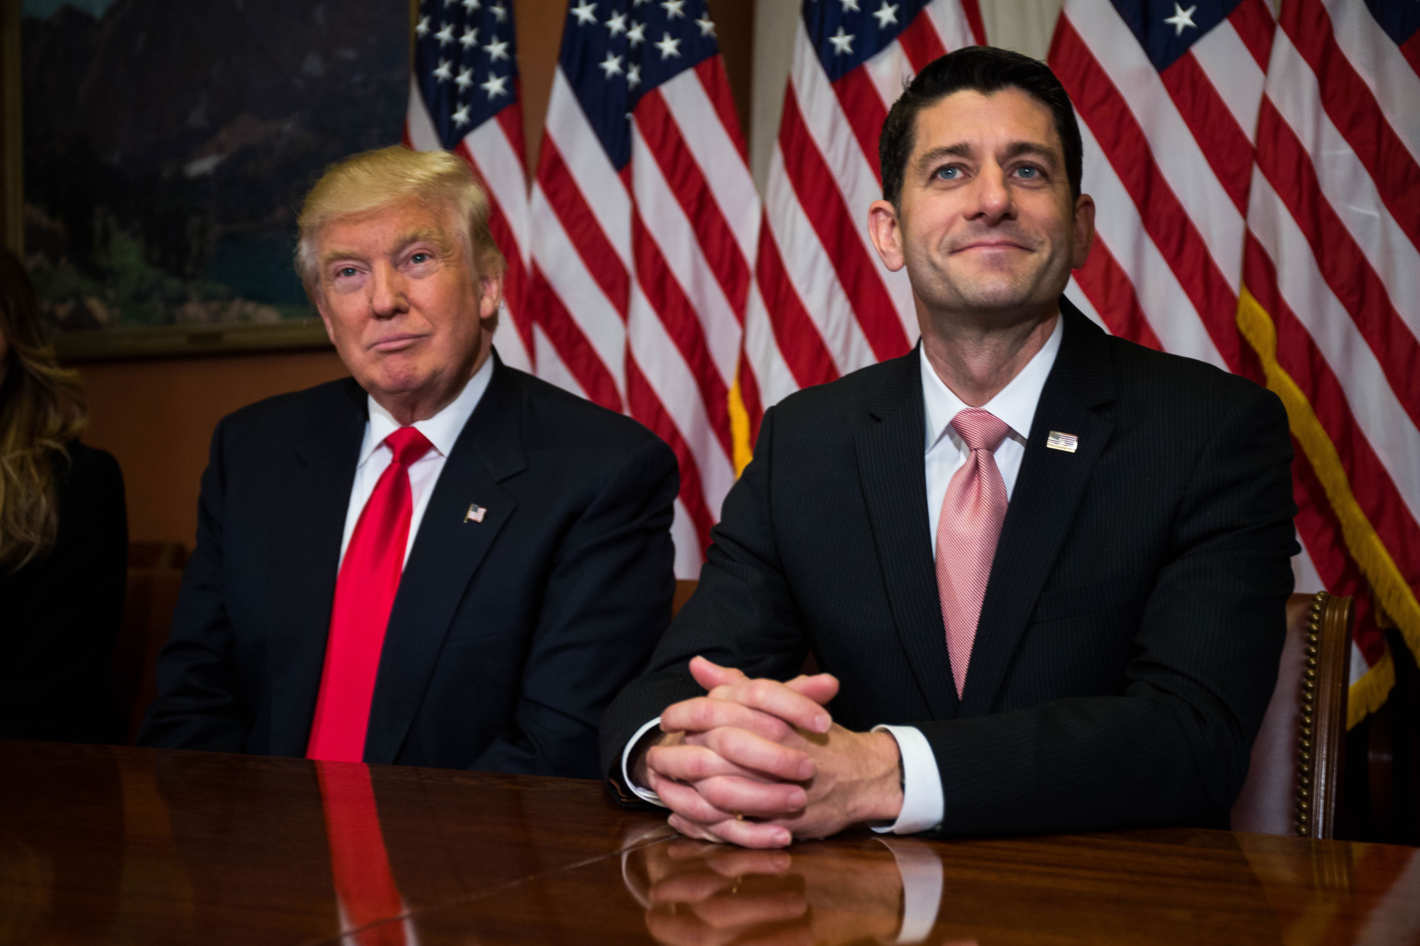 Image President Trump with Speaker of the House, Paul Ryan